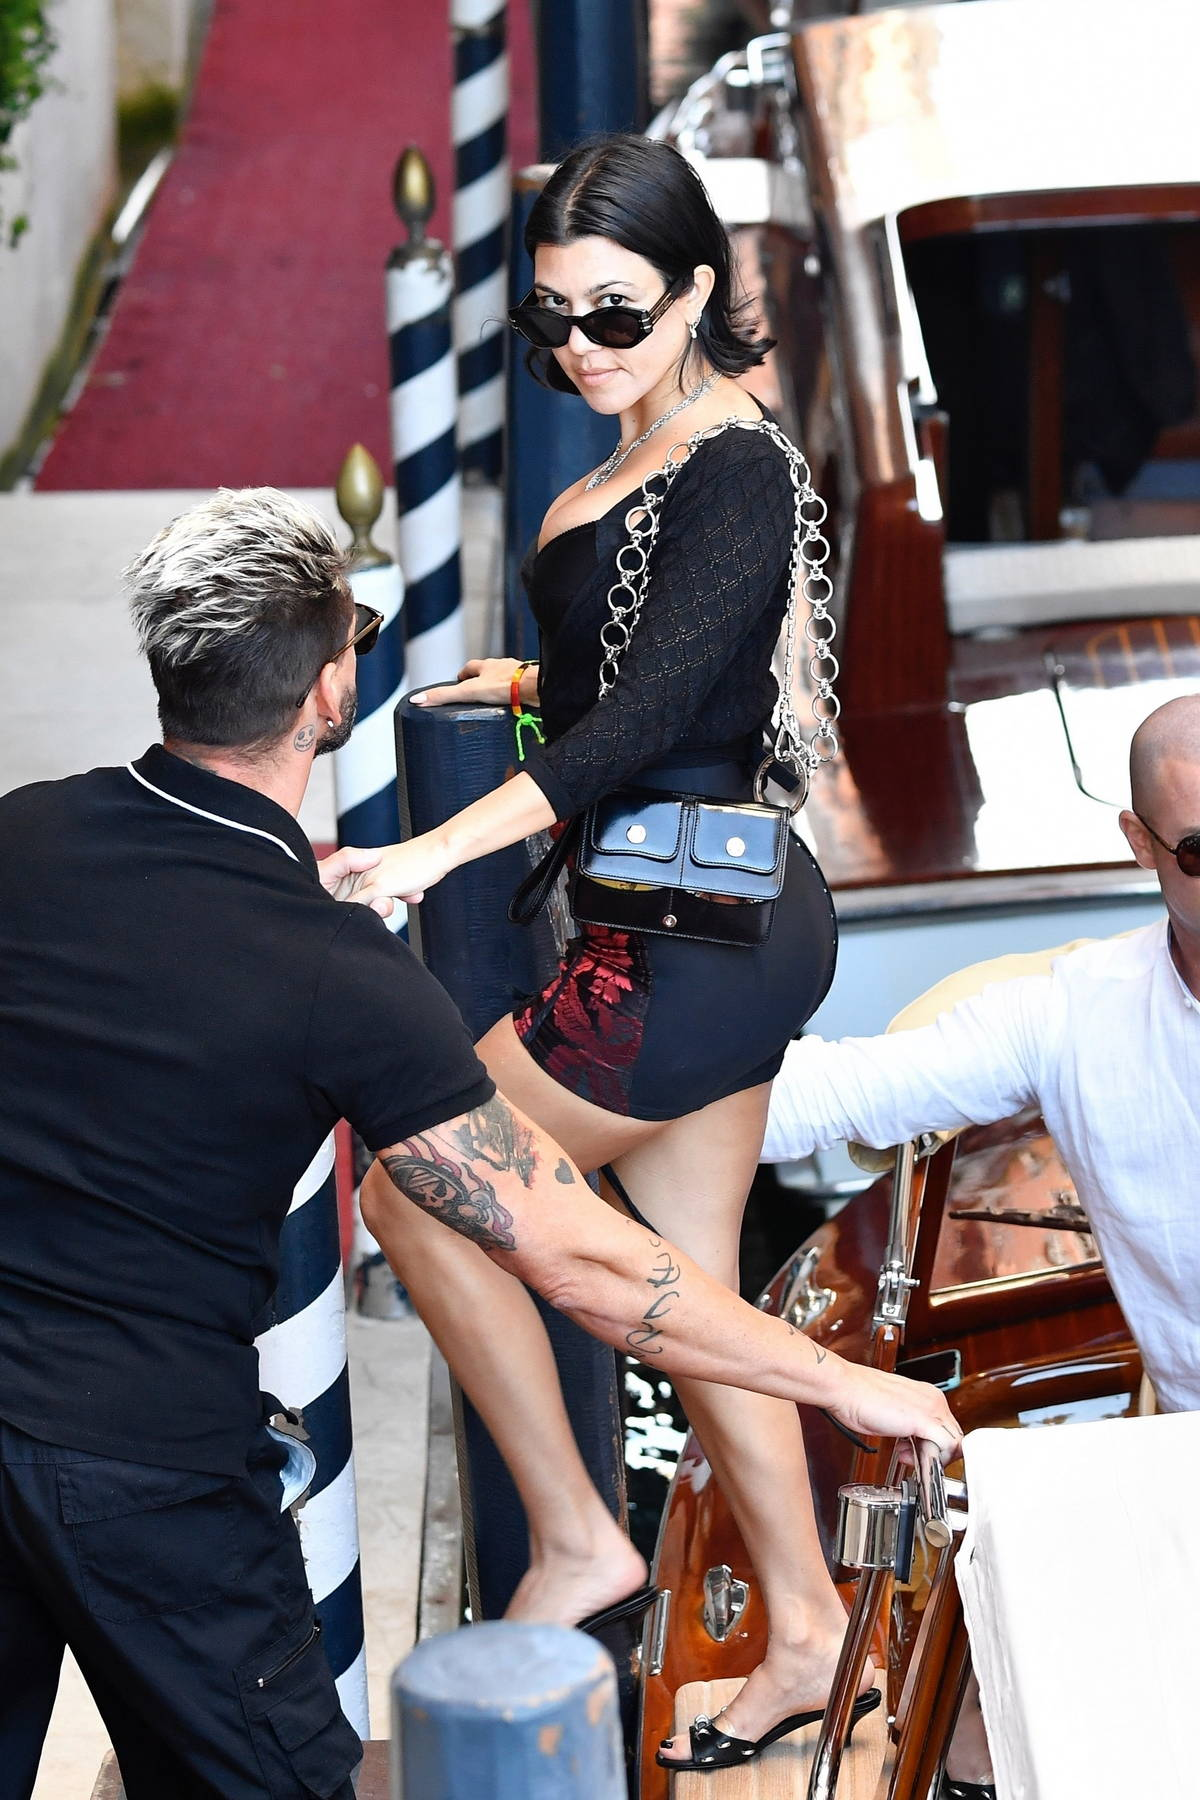 Kourtney Kardashian puts on a leggy display while out enjoying the sights with beau Travis Barker in Venice, Italy